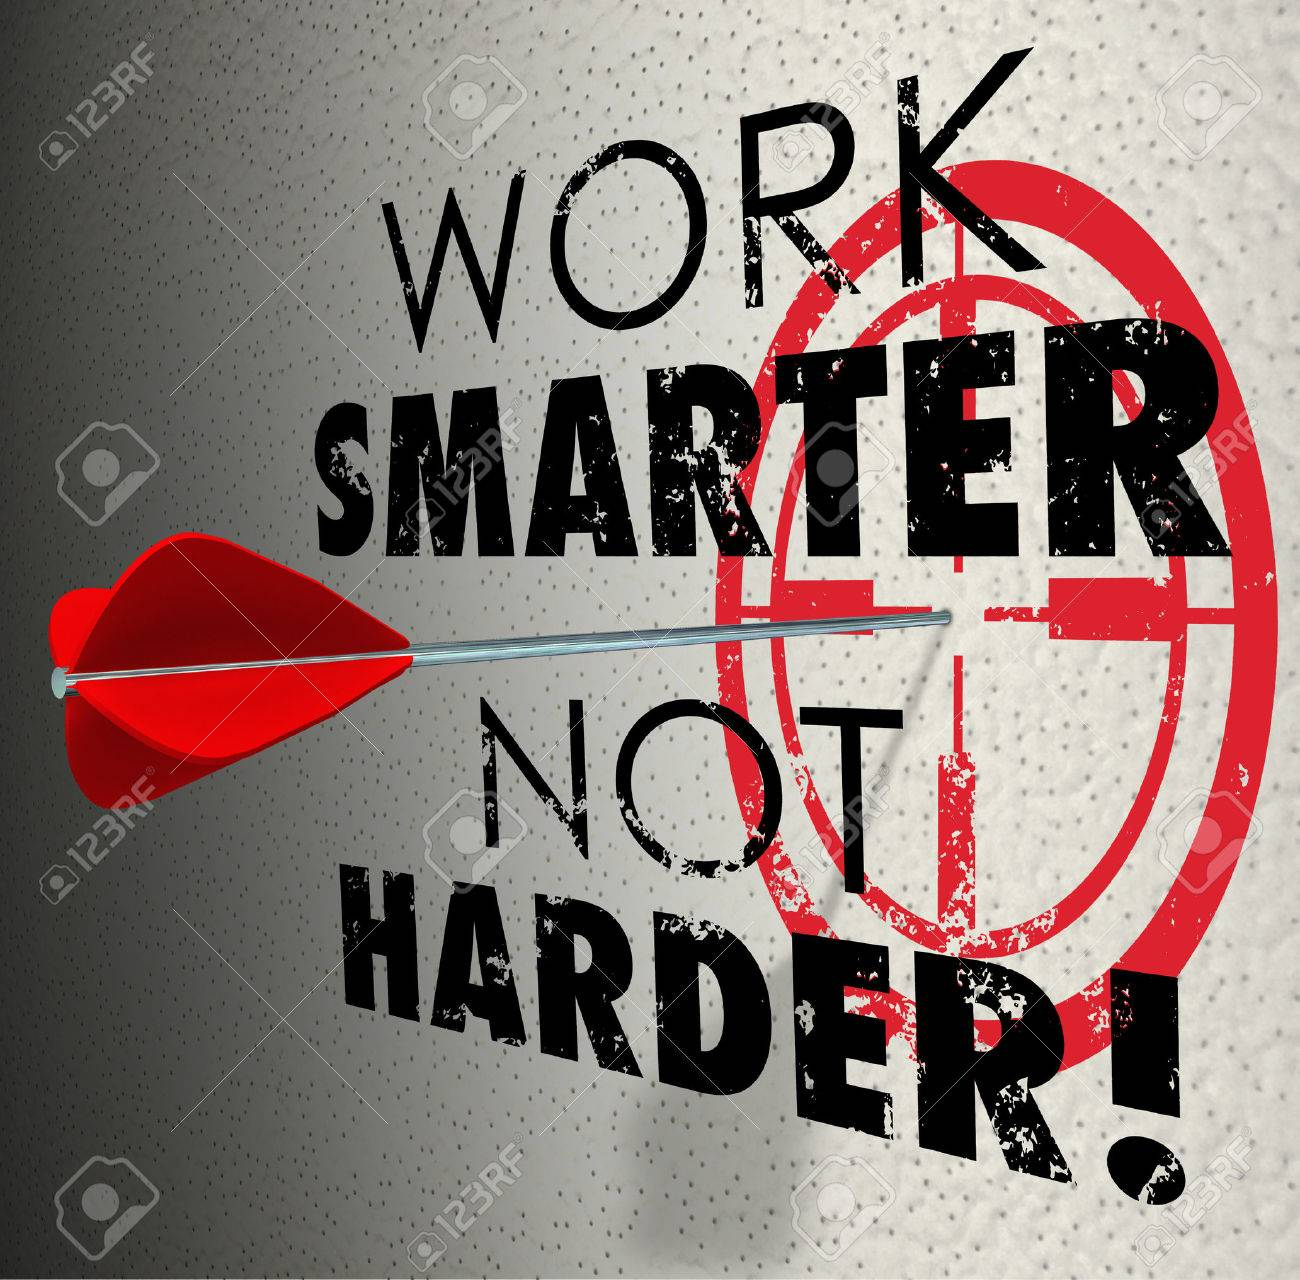 Work Smarter Not Harder words and target bullseye with arrow